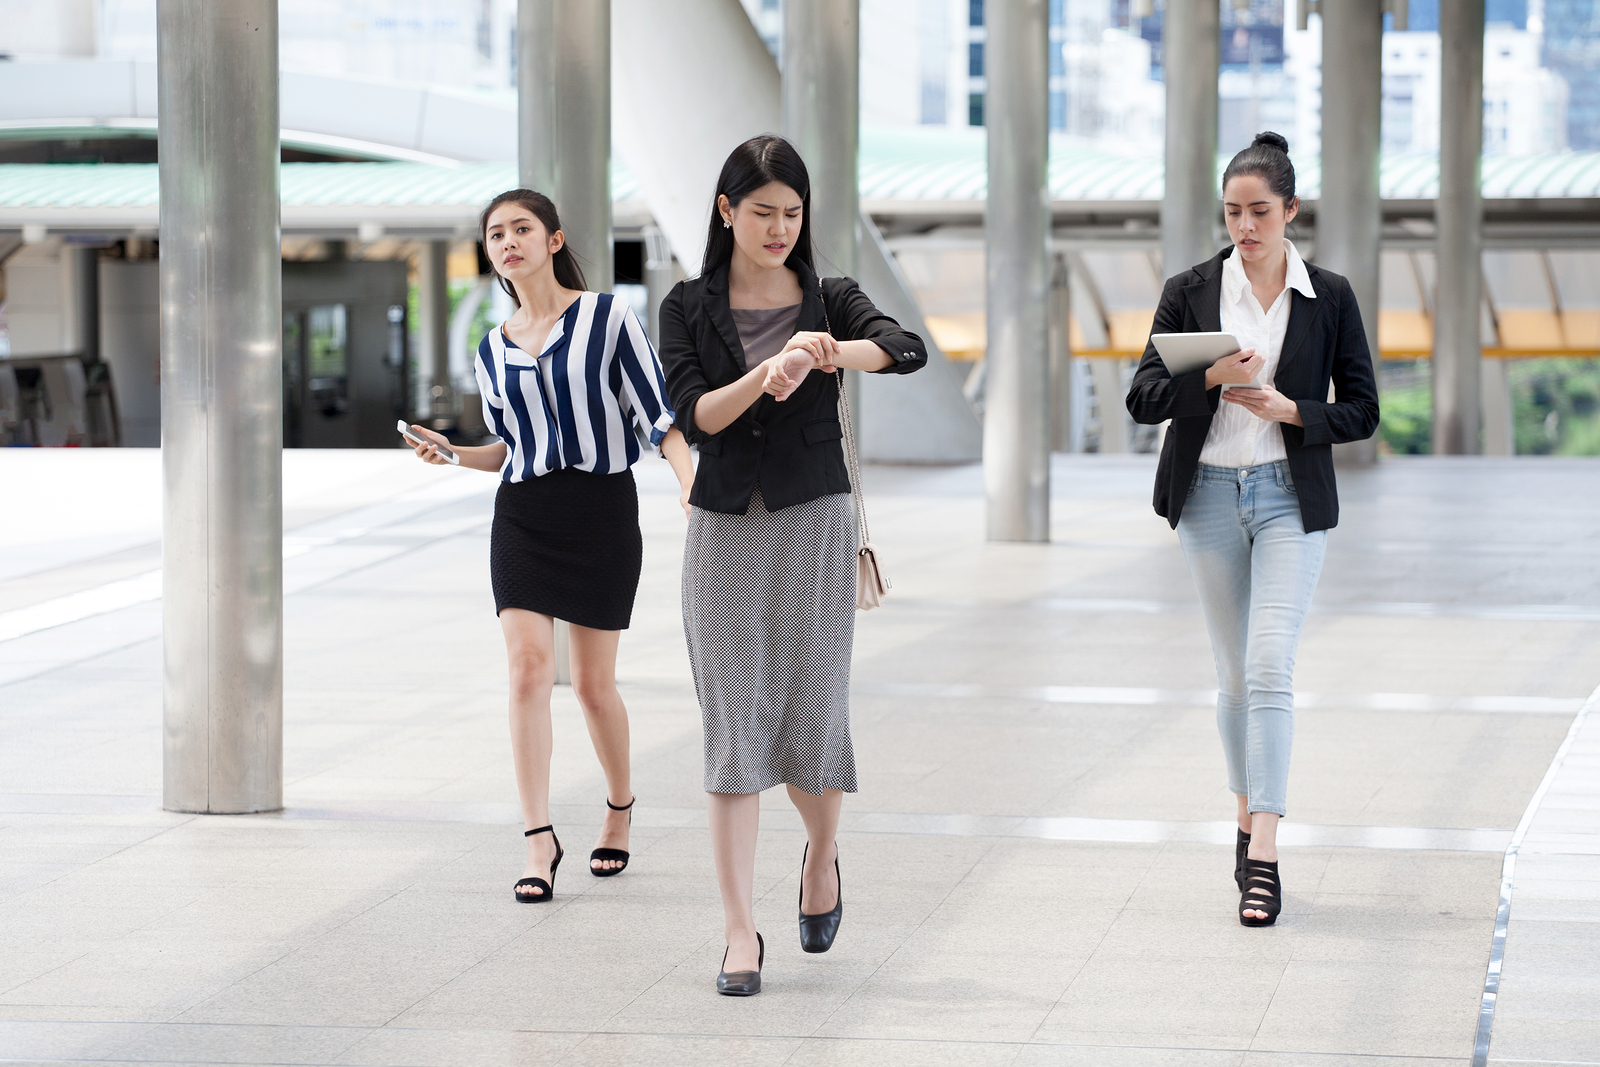 Group of businesswomen running late.